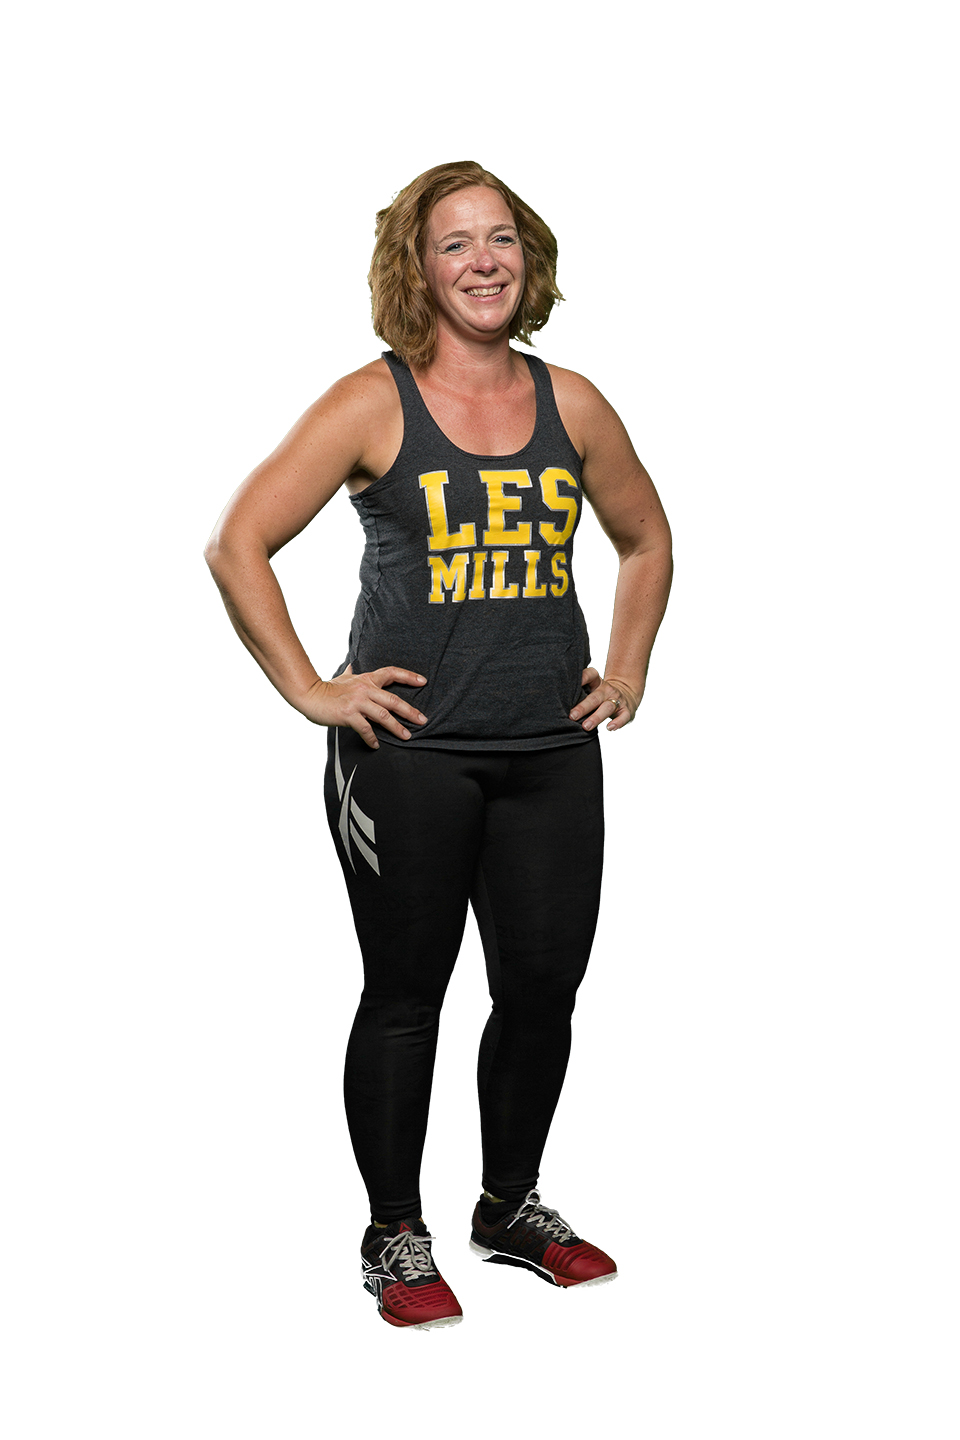 Carrie - RPM, BodyCombat, and BodyPump InstructorCarrie started her Les Mills journey in 2011 with RPM cert. AIM 1 status unlocked in Aug 2016 Bodycombat cert in Feb 2013 Bodypump in July 2014. AIM 1 cert obtained in Jan 2018She fell in love with all things fitness in Fall 2009. Stay at home mom of 2. Looks forward to helping others challenge themselves and maintain that change. Everything in moderation, including pizza. Favorite quote :